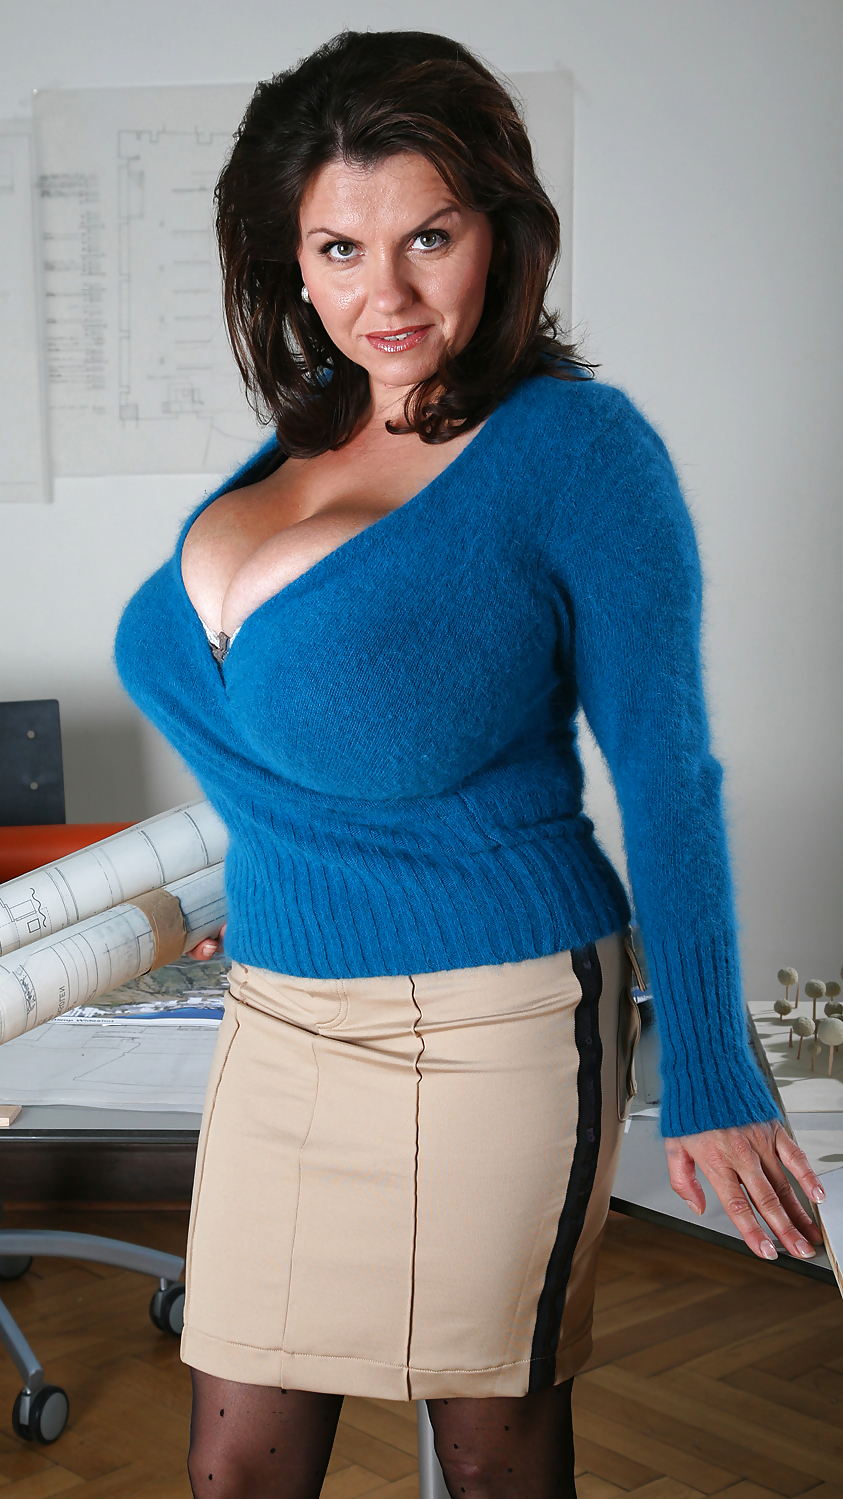 See And Save As Big Boobs Tight Sweaters Porn Pict - Xhamsgesekinfo-2918